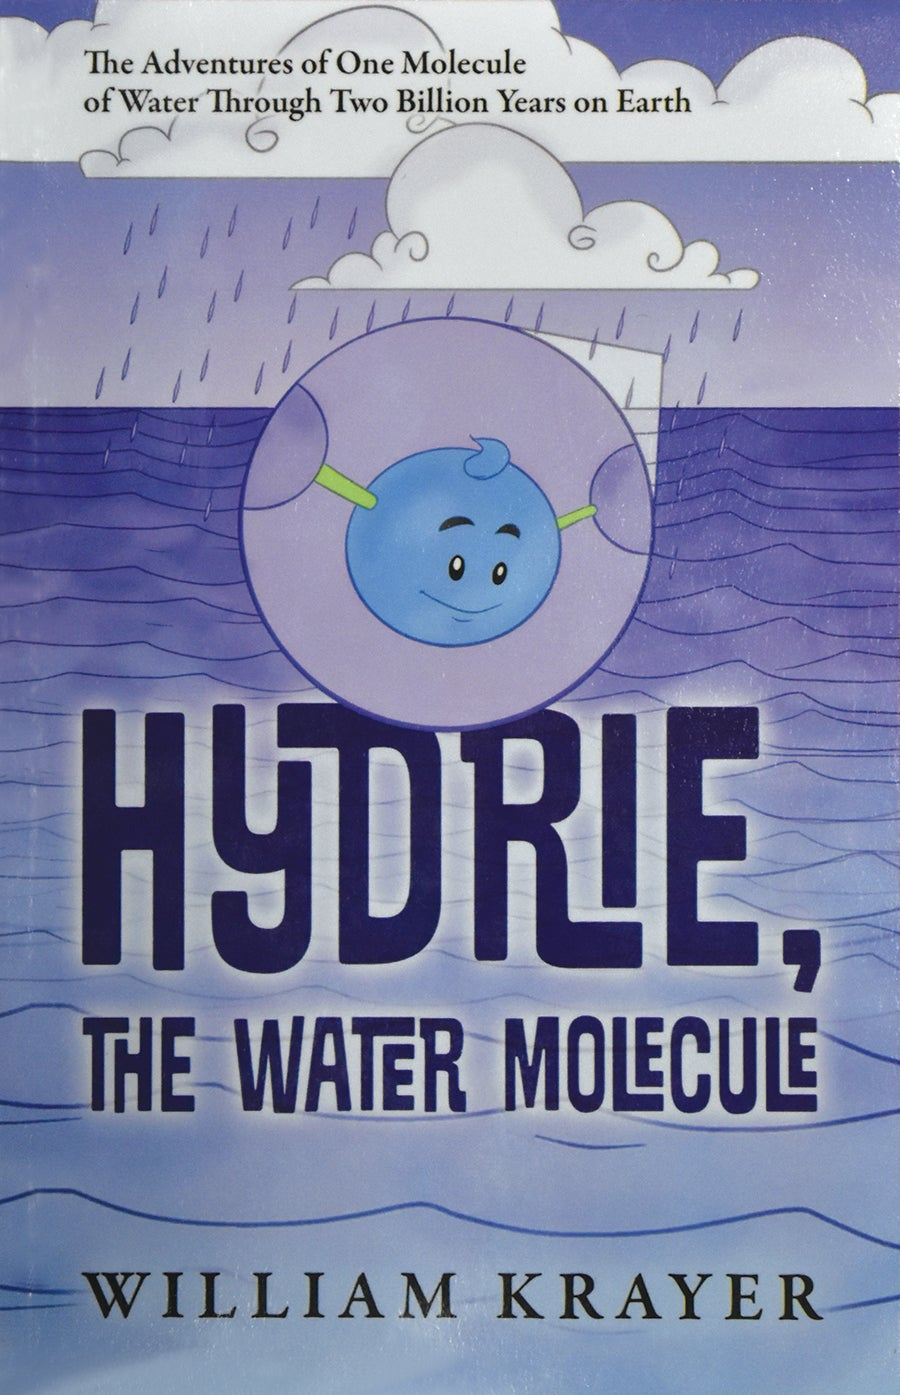 Cover of William Krayer's children's book Hydrie, the Water Molecule